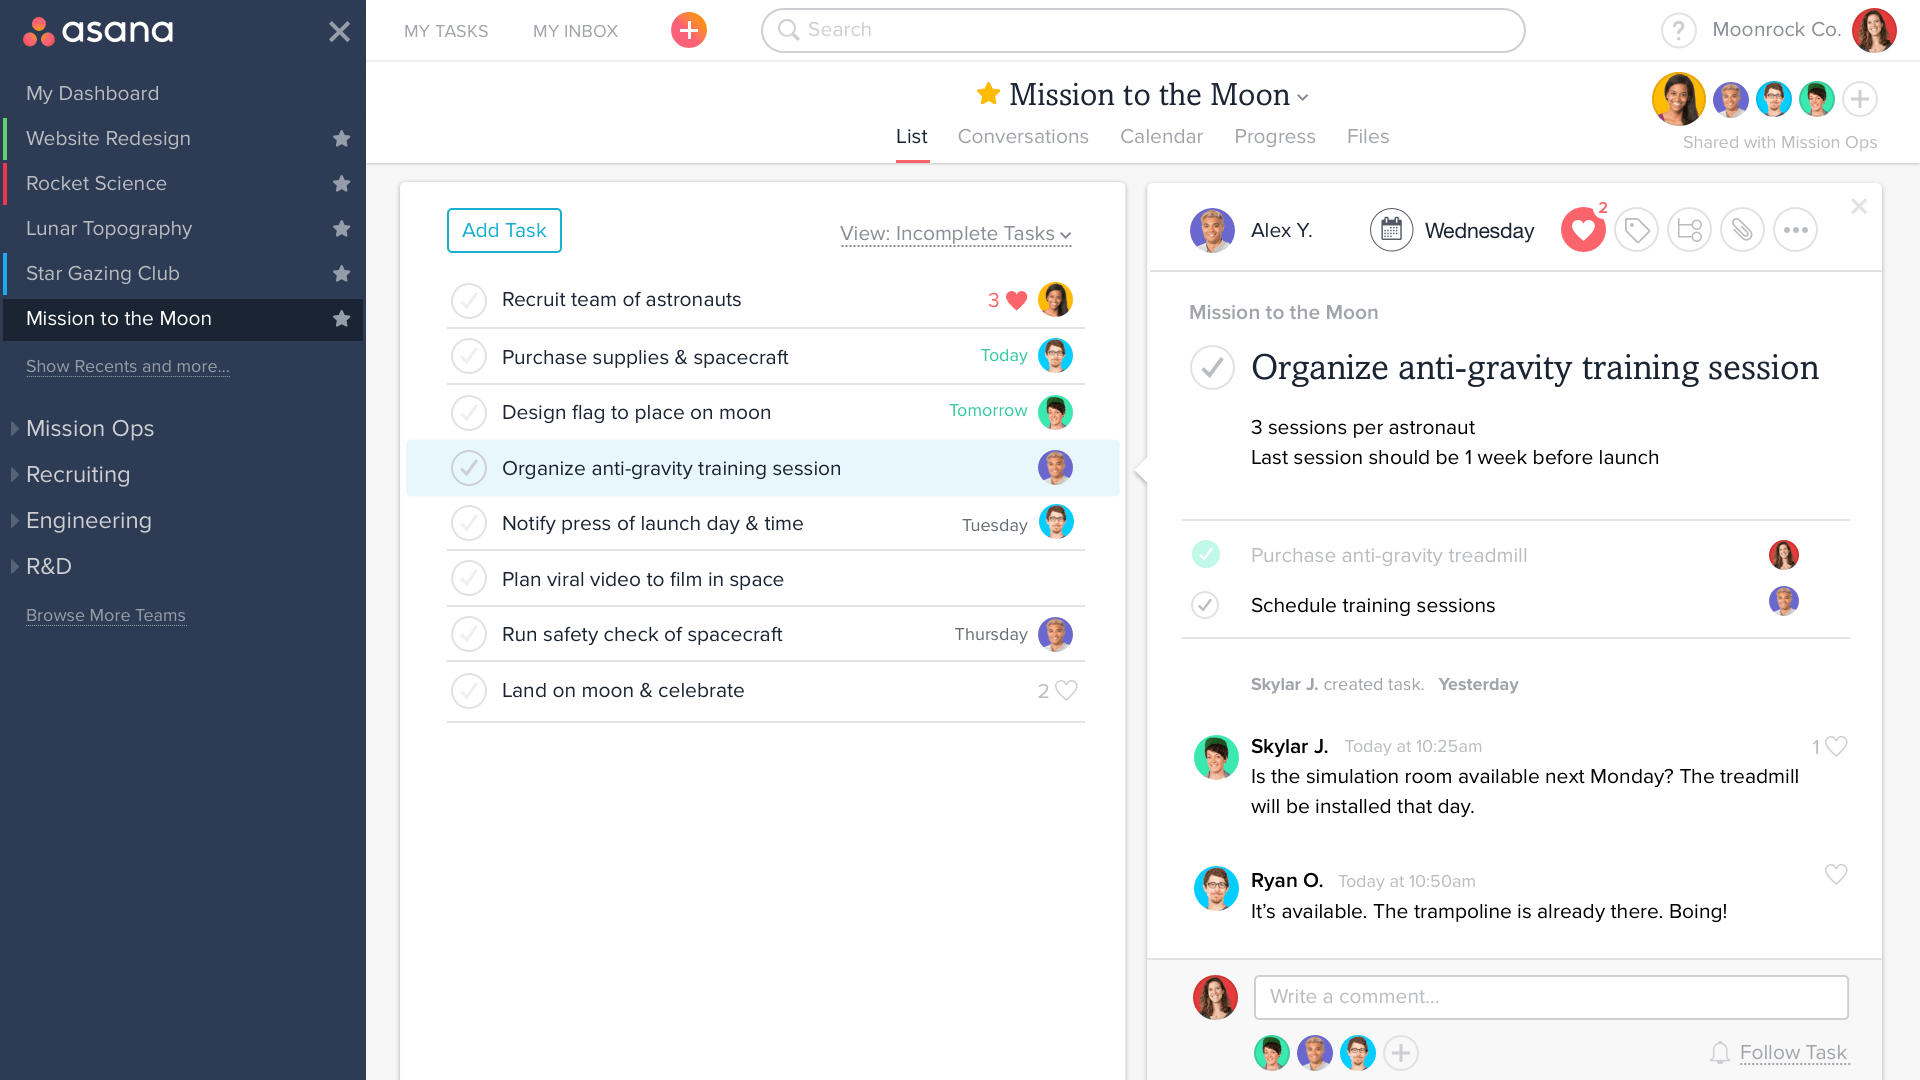 How to Manage Tasks with Asana